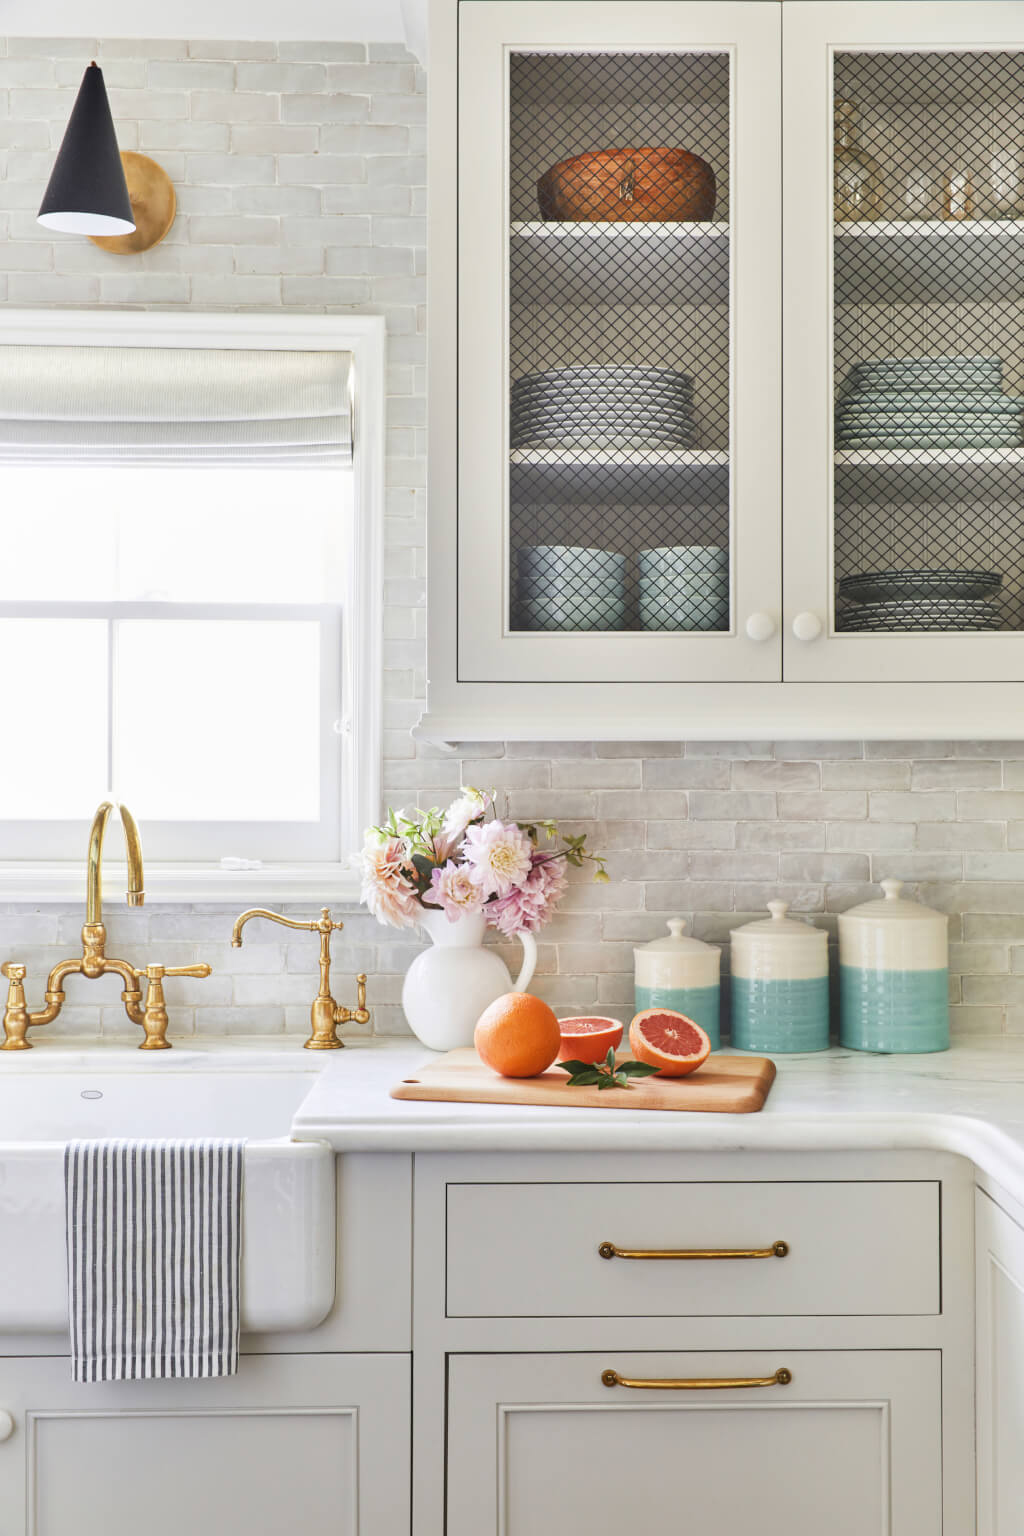 Add Style to Your Kitchen Countertops - MBS Interiors